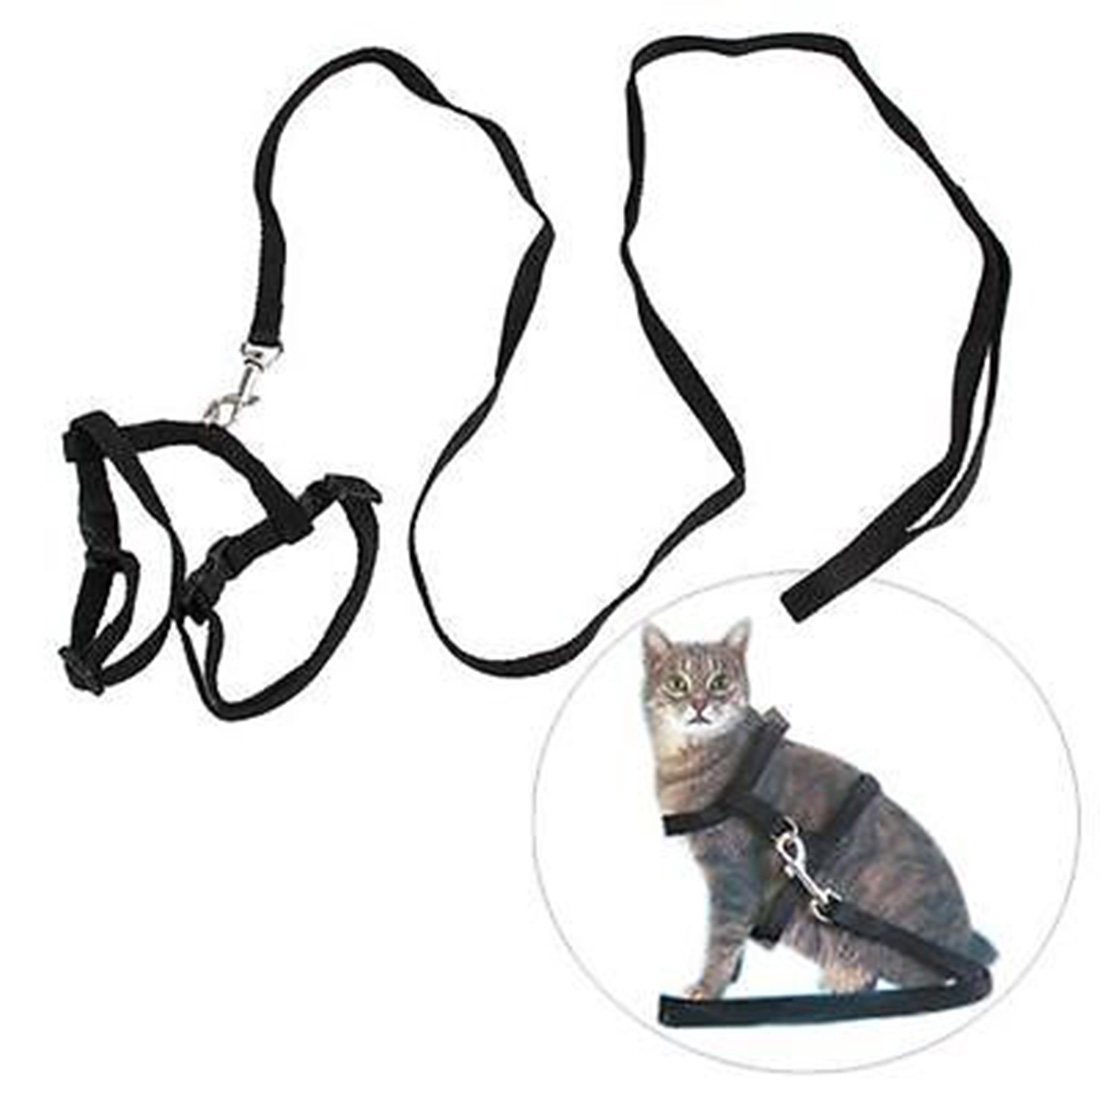 H Harness For Cats